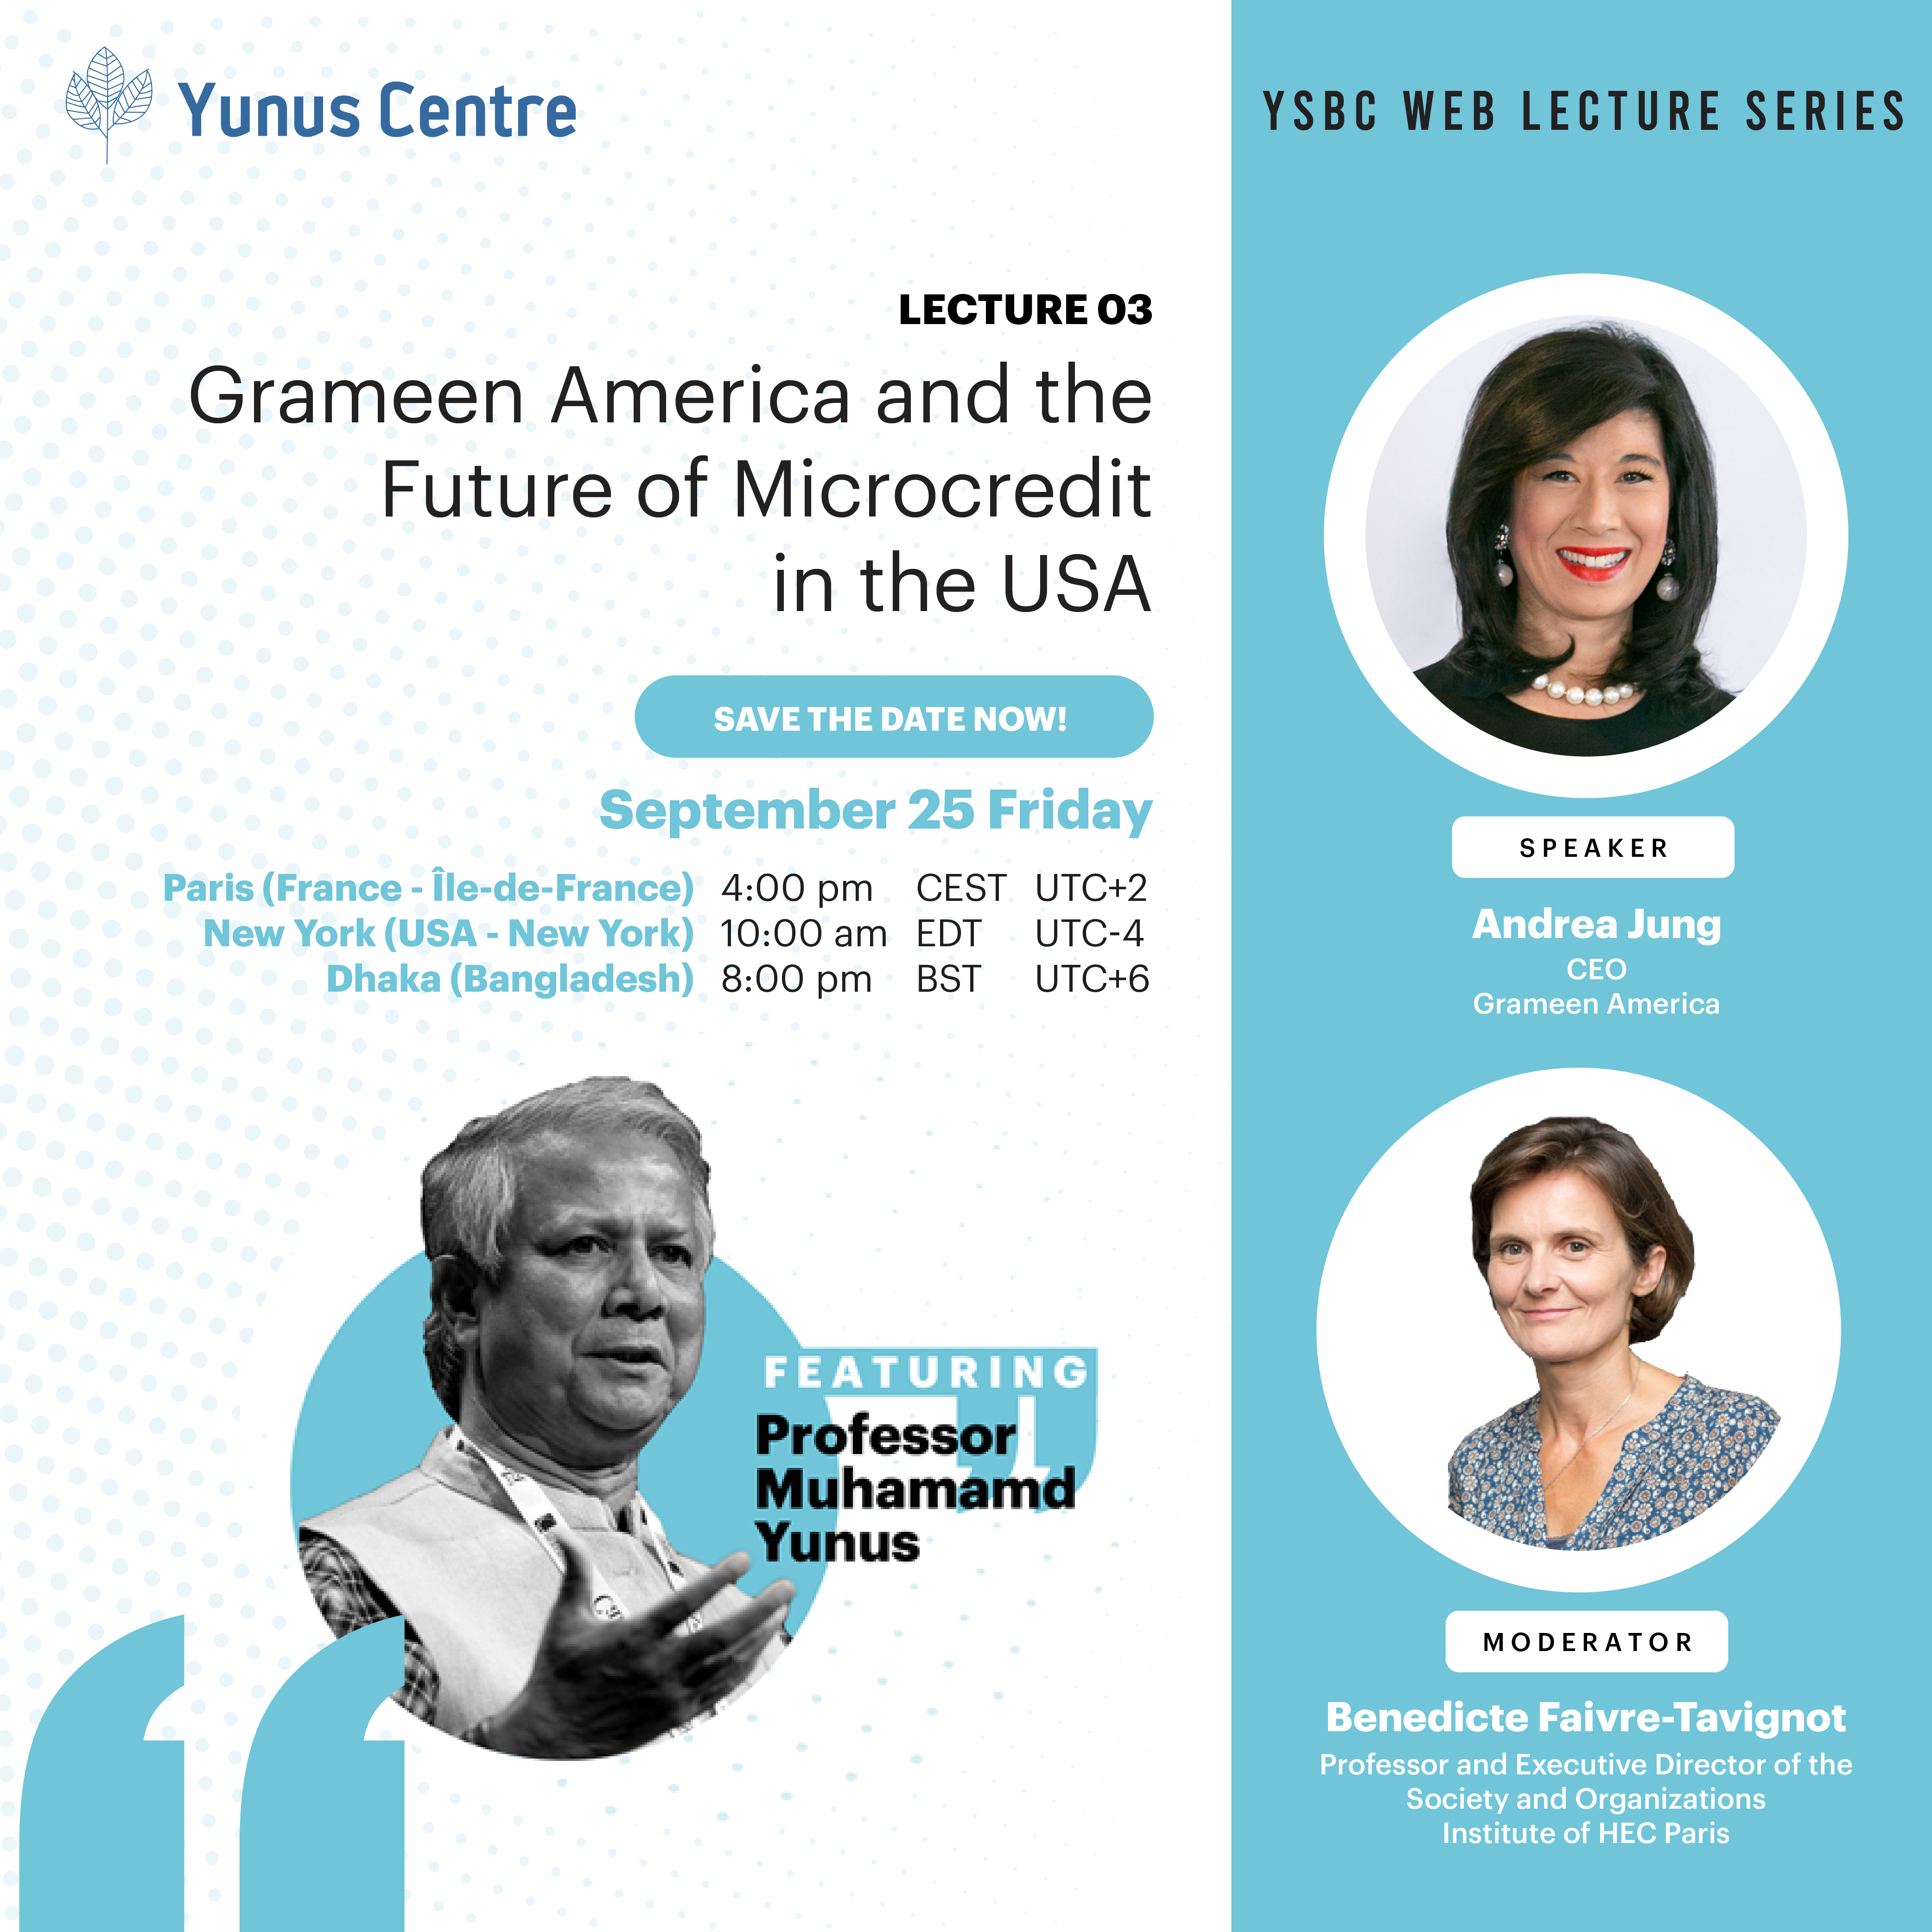 Registration now open for Lecture 03 of YSBC Web Lecture Series